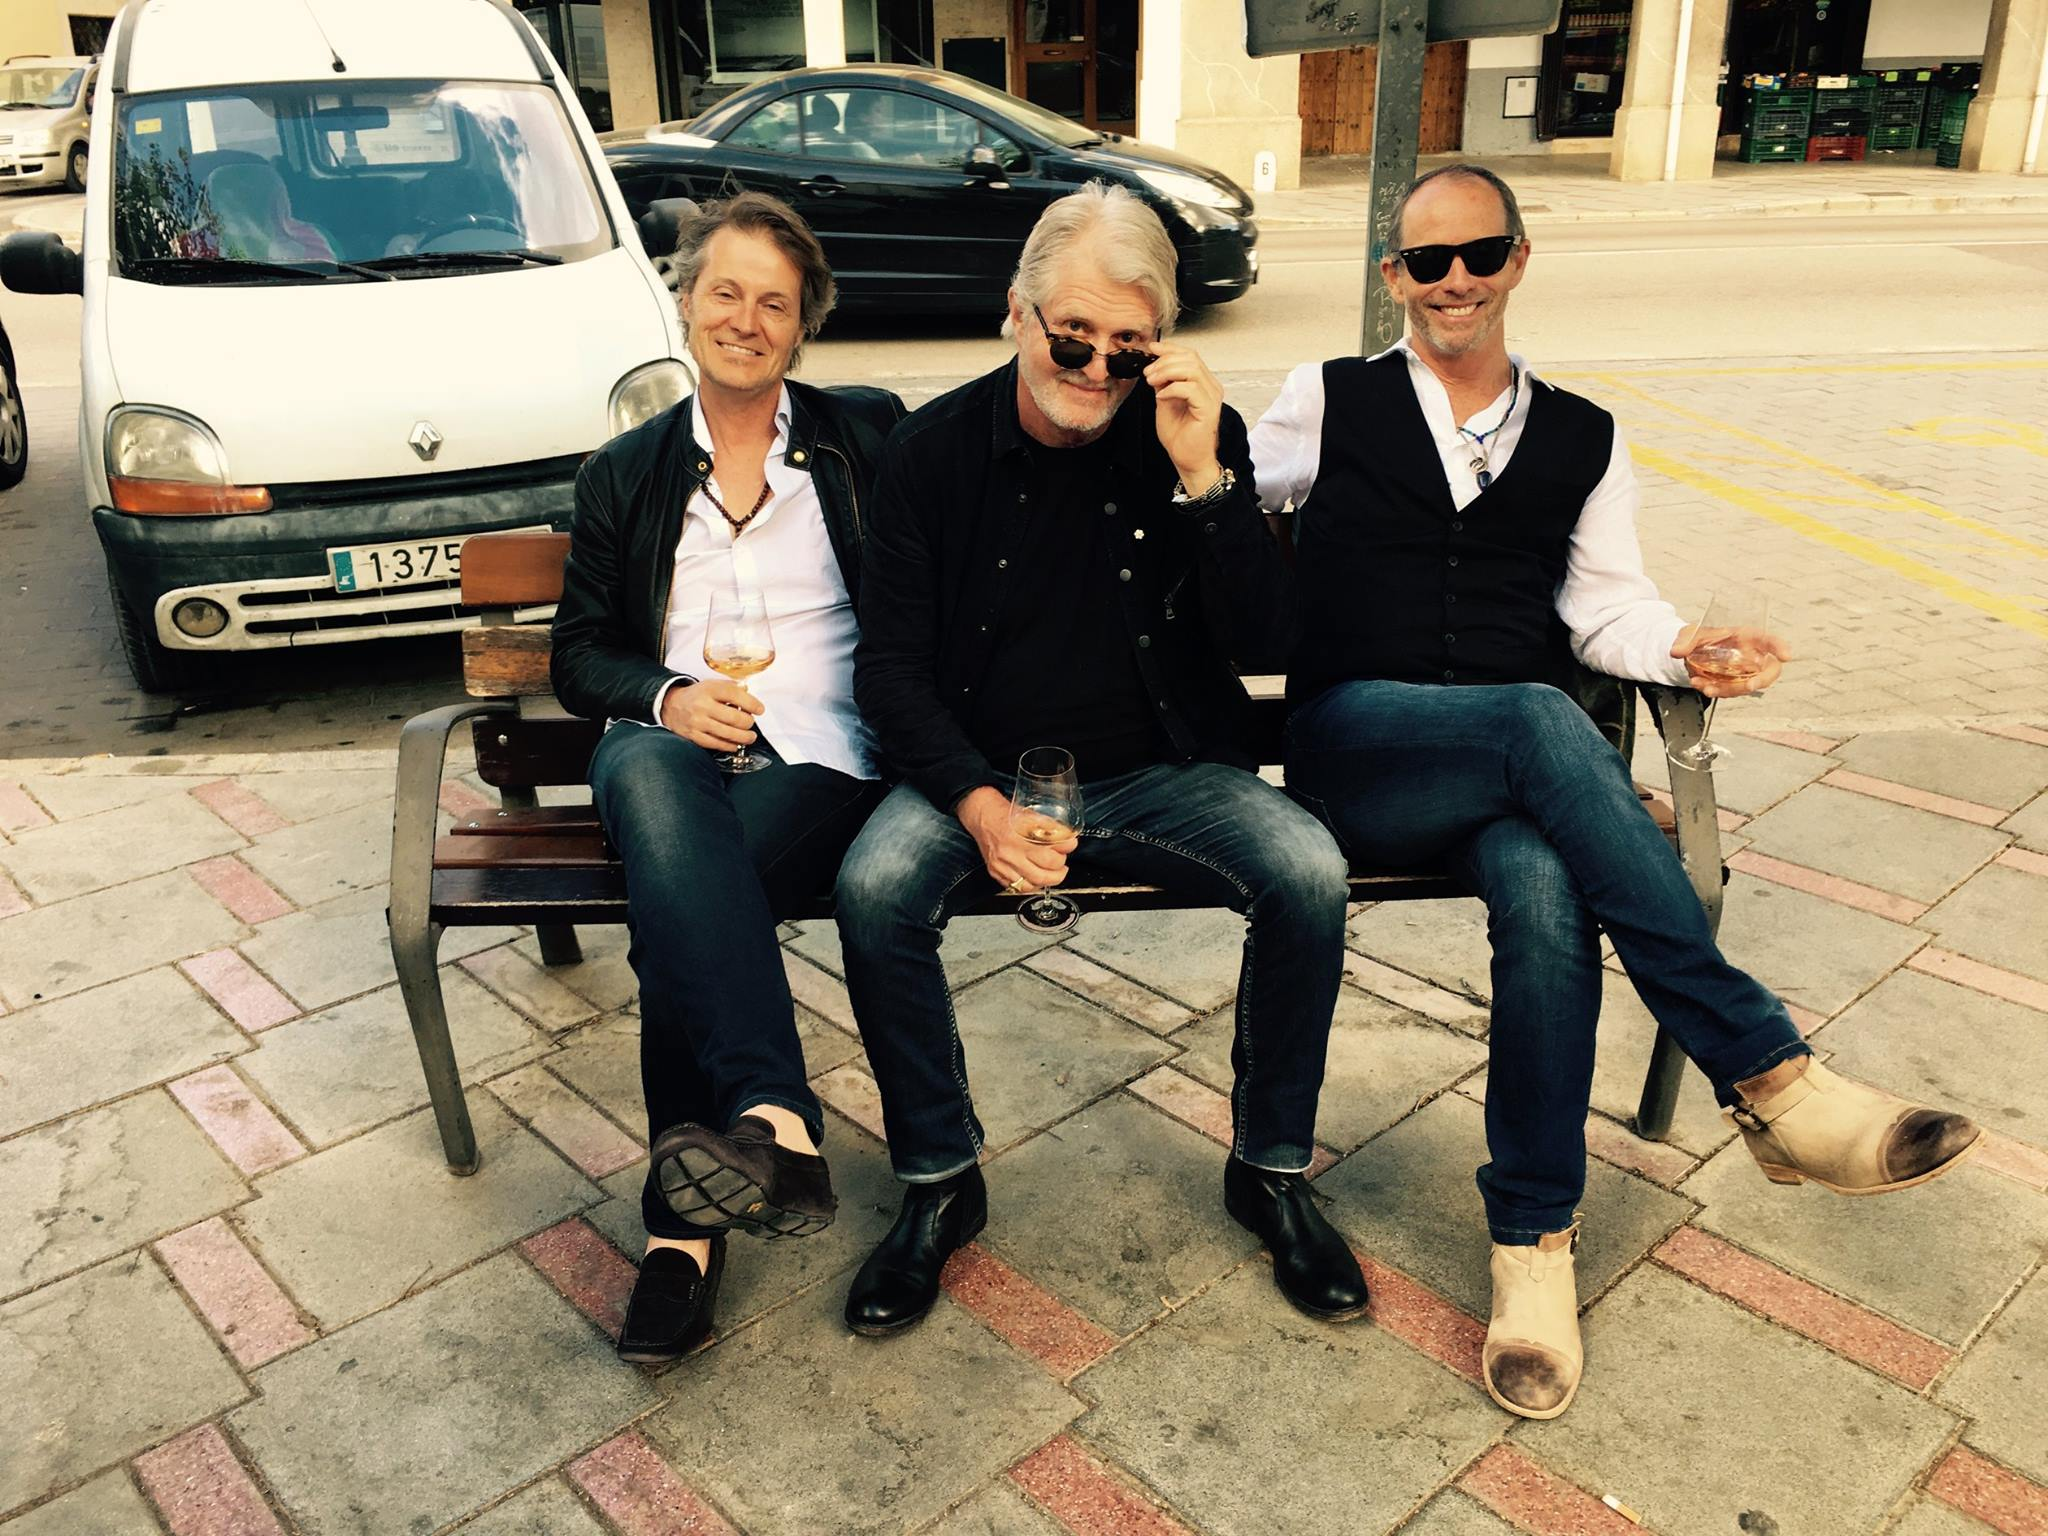 Jim Cuddy, Tom Cochrane and Barney Bentall hanging out